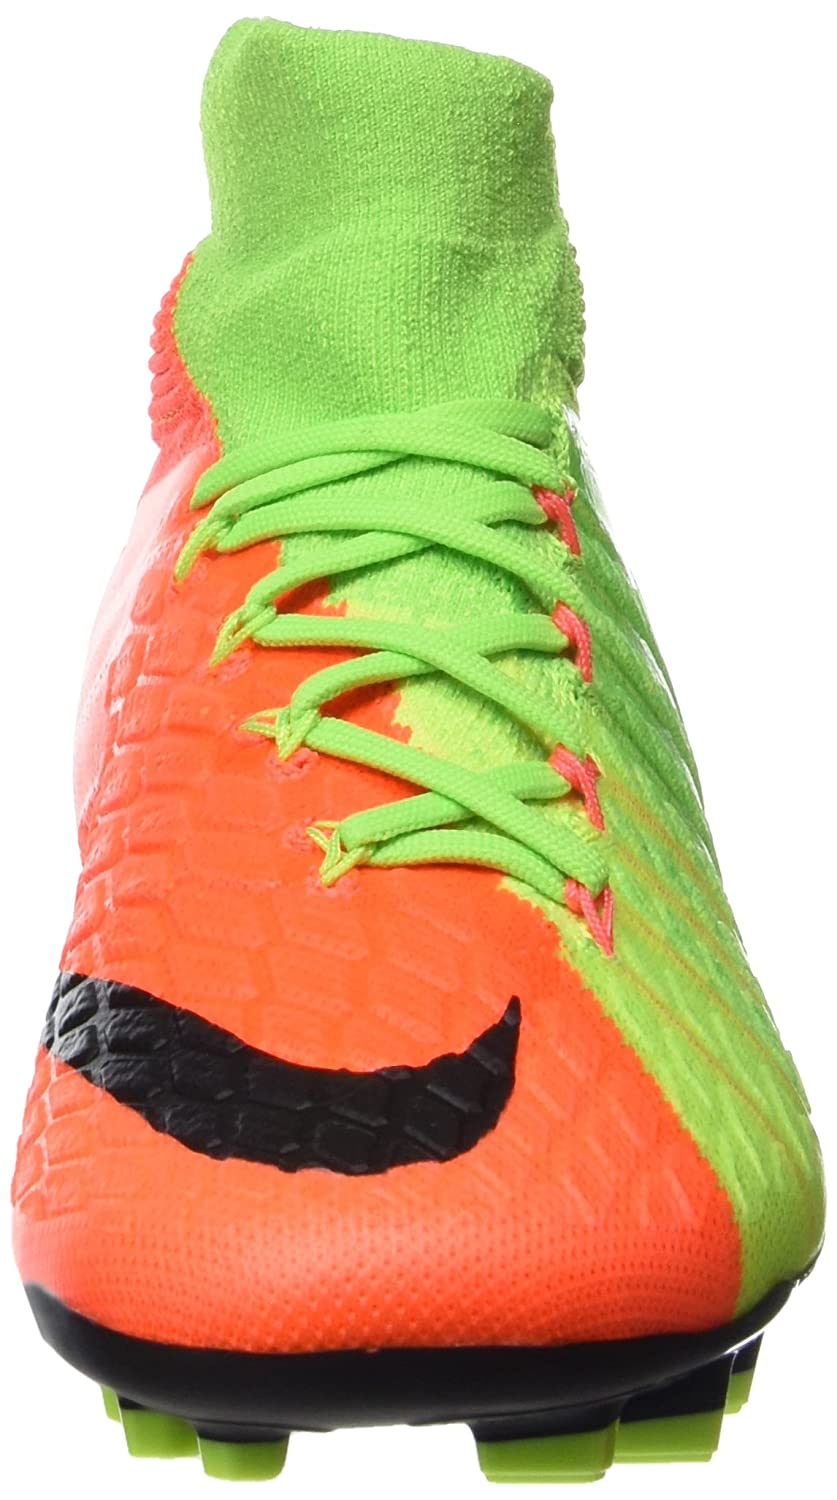 Nike Youth Hypervenom Phantom III Dynamic Fit FG Cleats [ELECTRIC GREEN]  (4. 5Y): Buy Online at Low Prices in India - Amazon.in